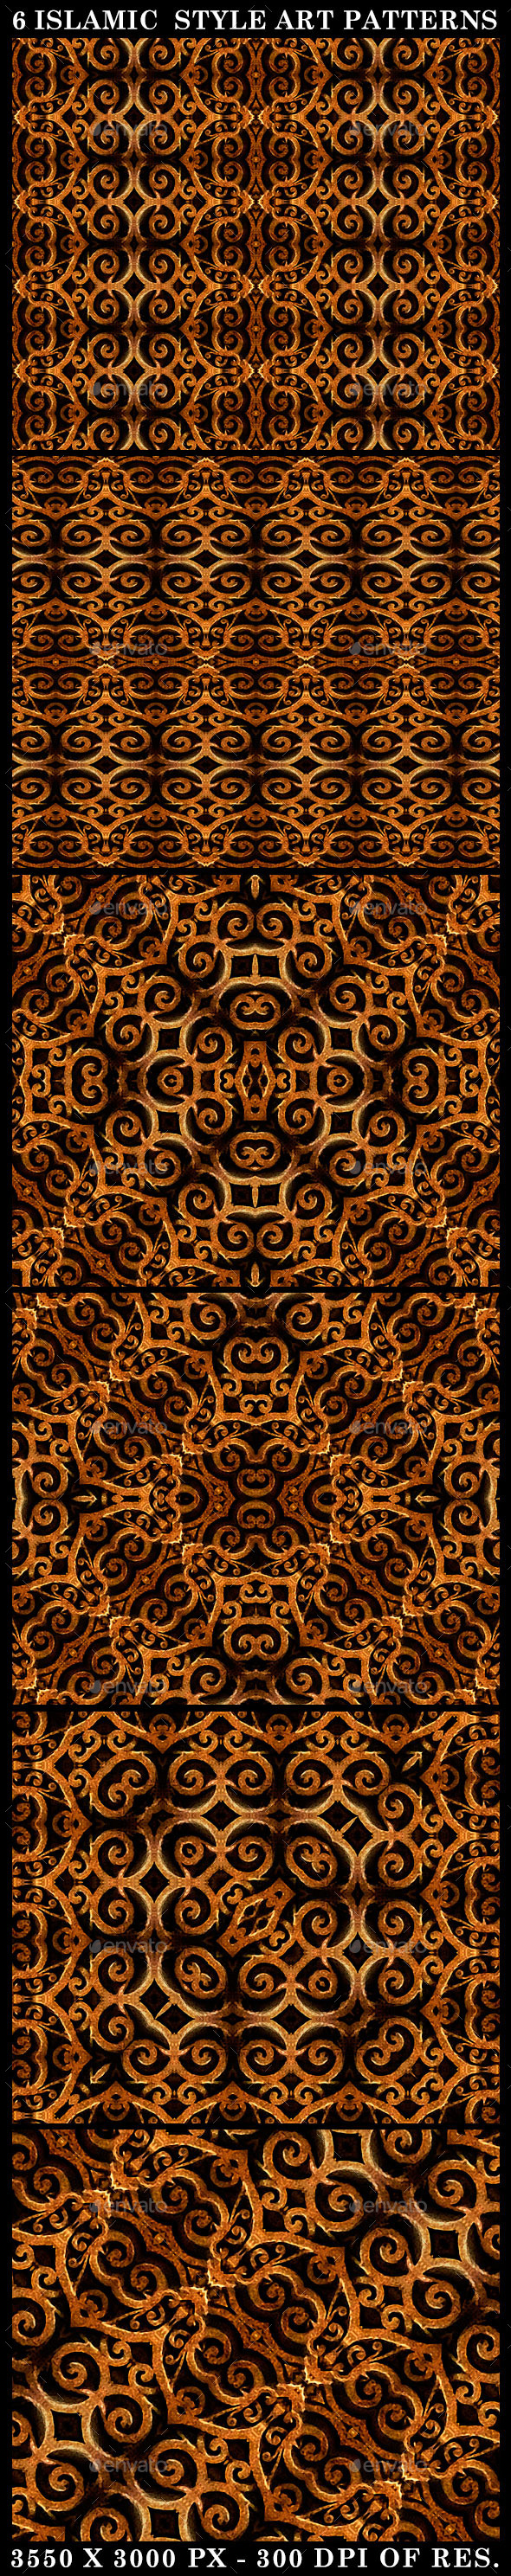 GraphicRiver 6 Islamic Style Art Patterns 10464896